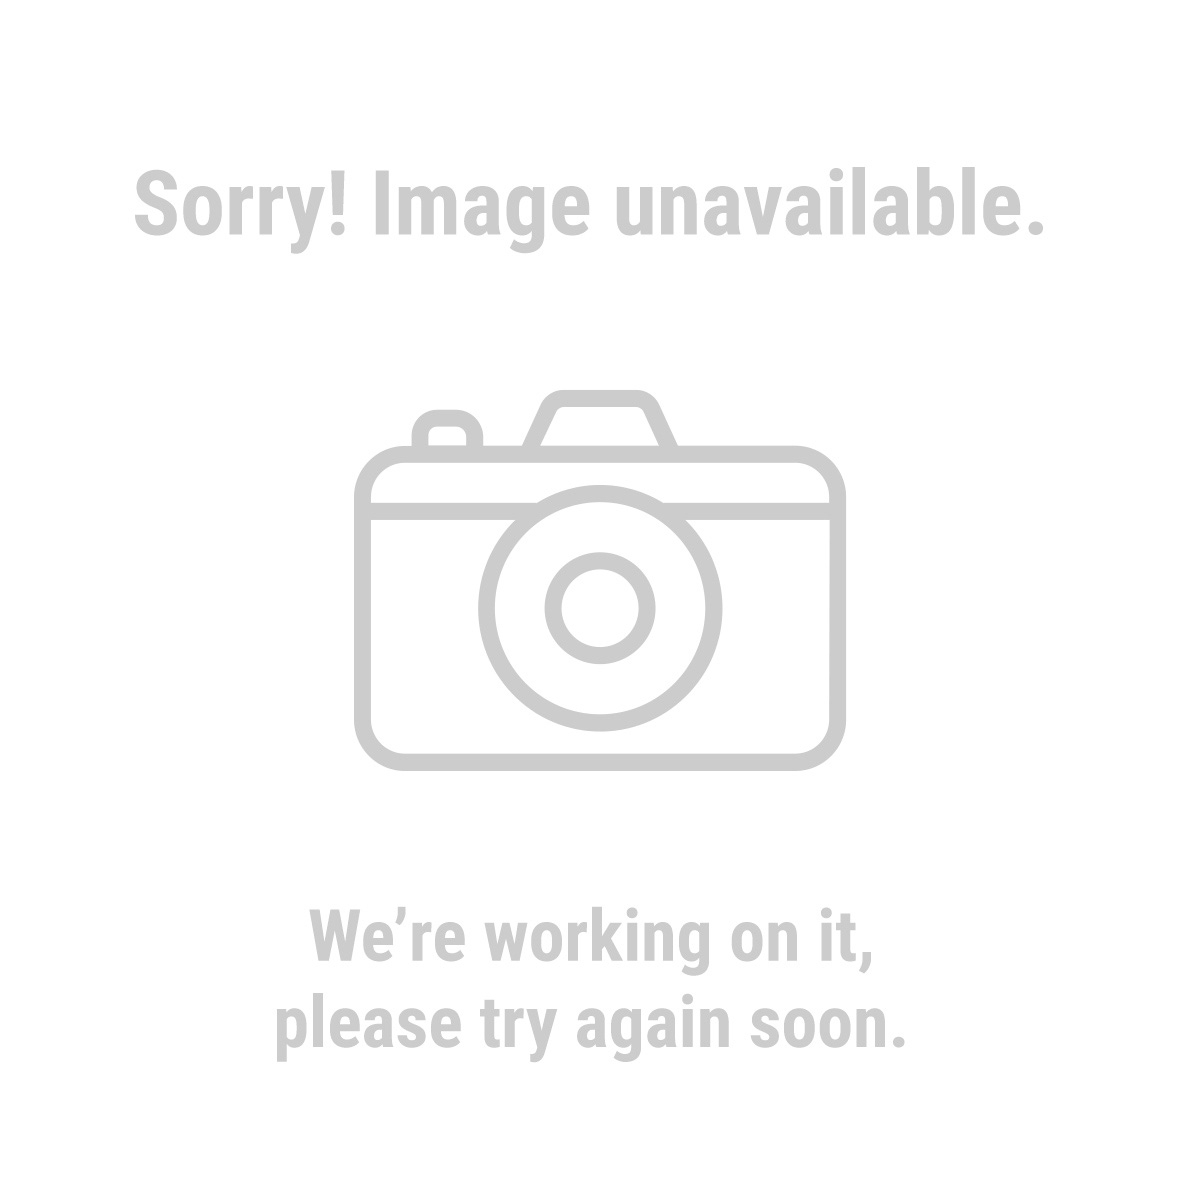 How Do I Kill Mosquitos Inside My Rv Irv2 Forums Mosquito Swatter Electronics Hobby